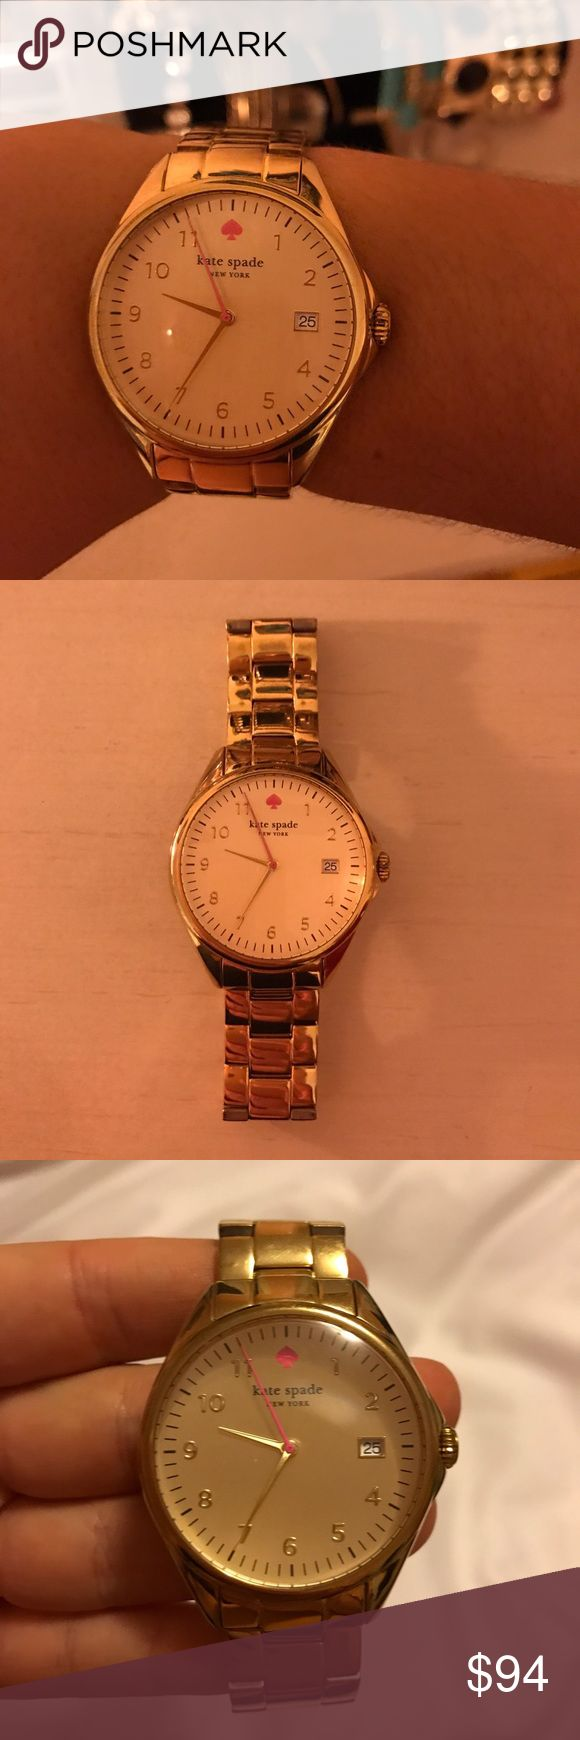 Kate Spade Gold Watch Kate Spade Gold Watch. Good condition needs new battery. kate spade Accessories Watches